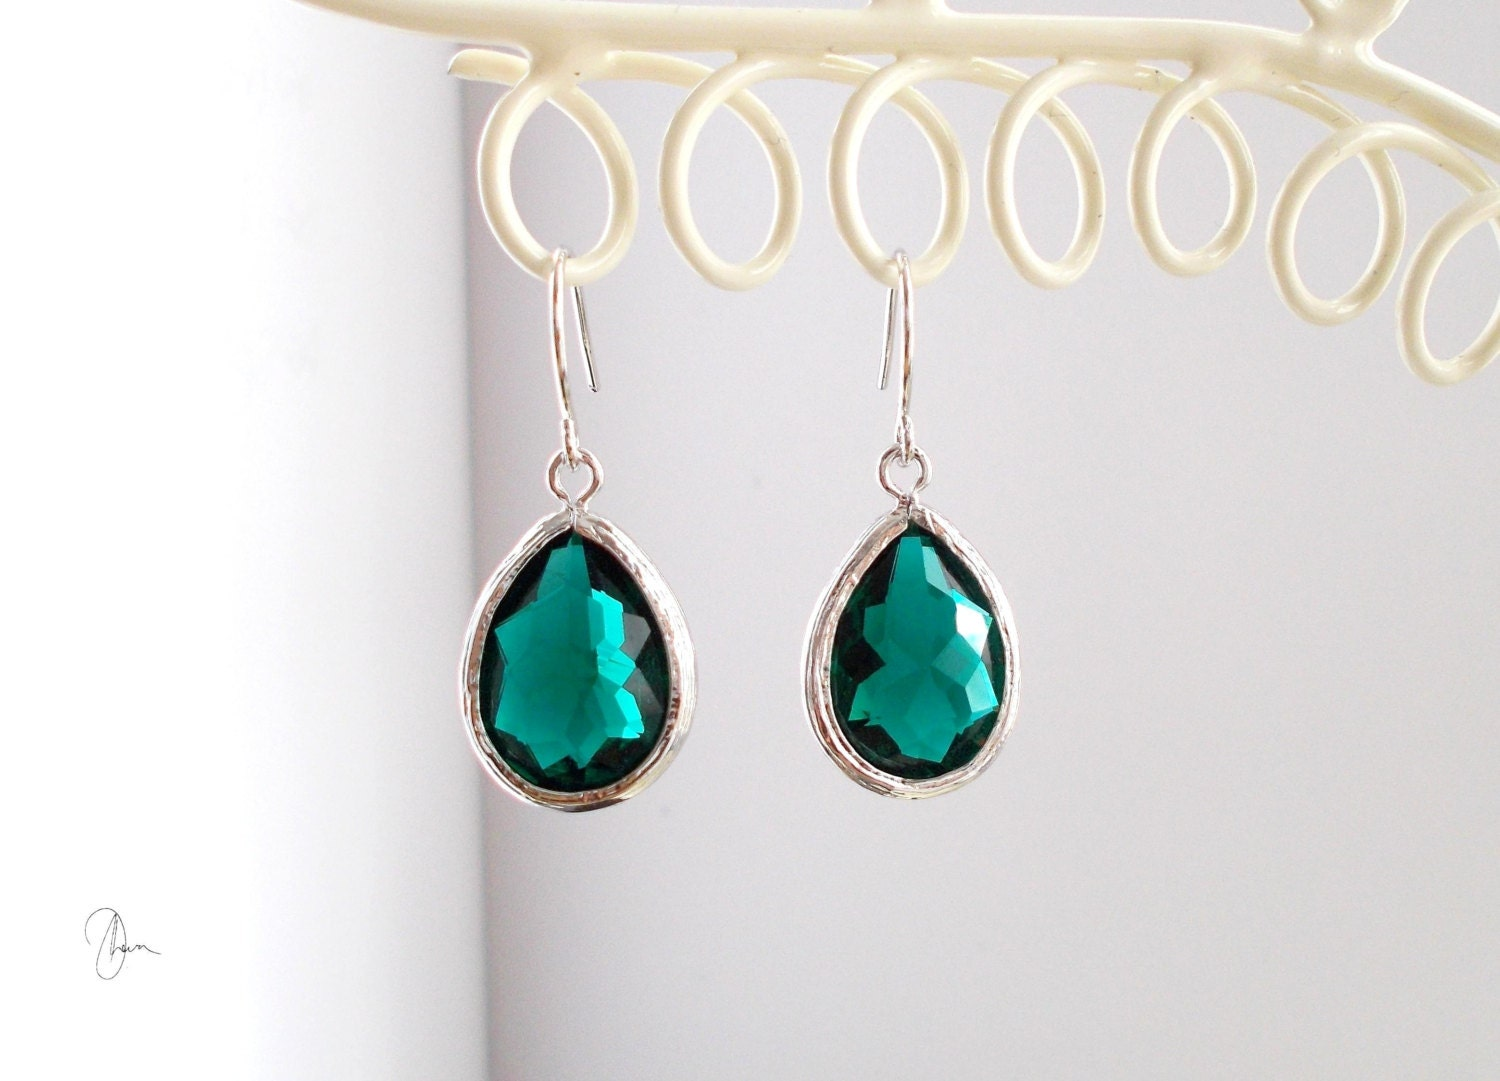 Emerald Green Crystal Earrings  Silver Bridesmaids Jewelry  Wedding Bride Maid Of Honor Gift  Small Dainty Minimal Crystal Jewelry